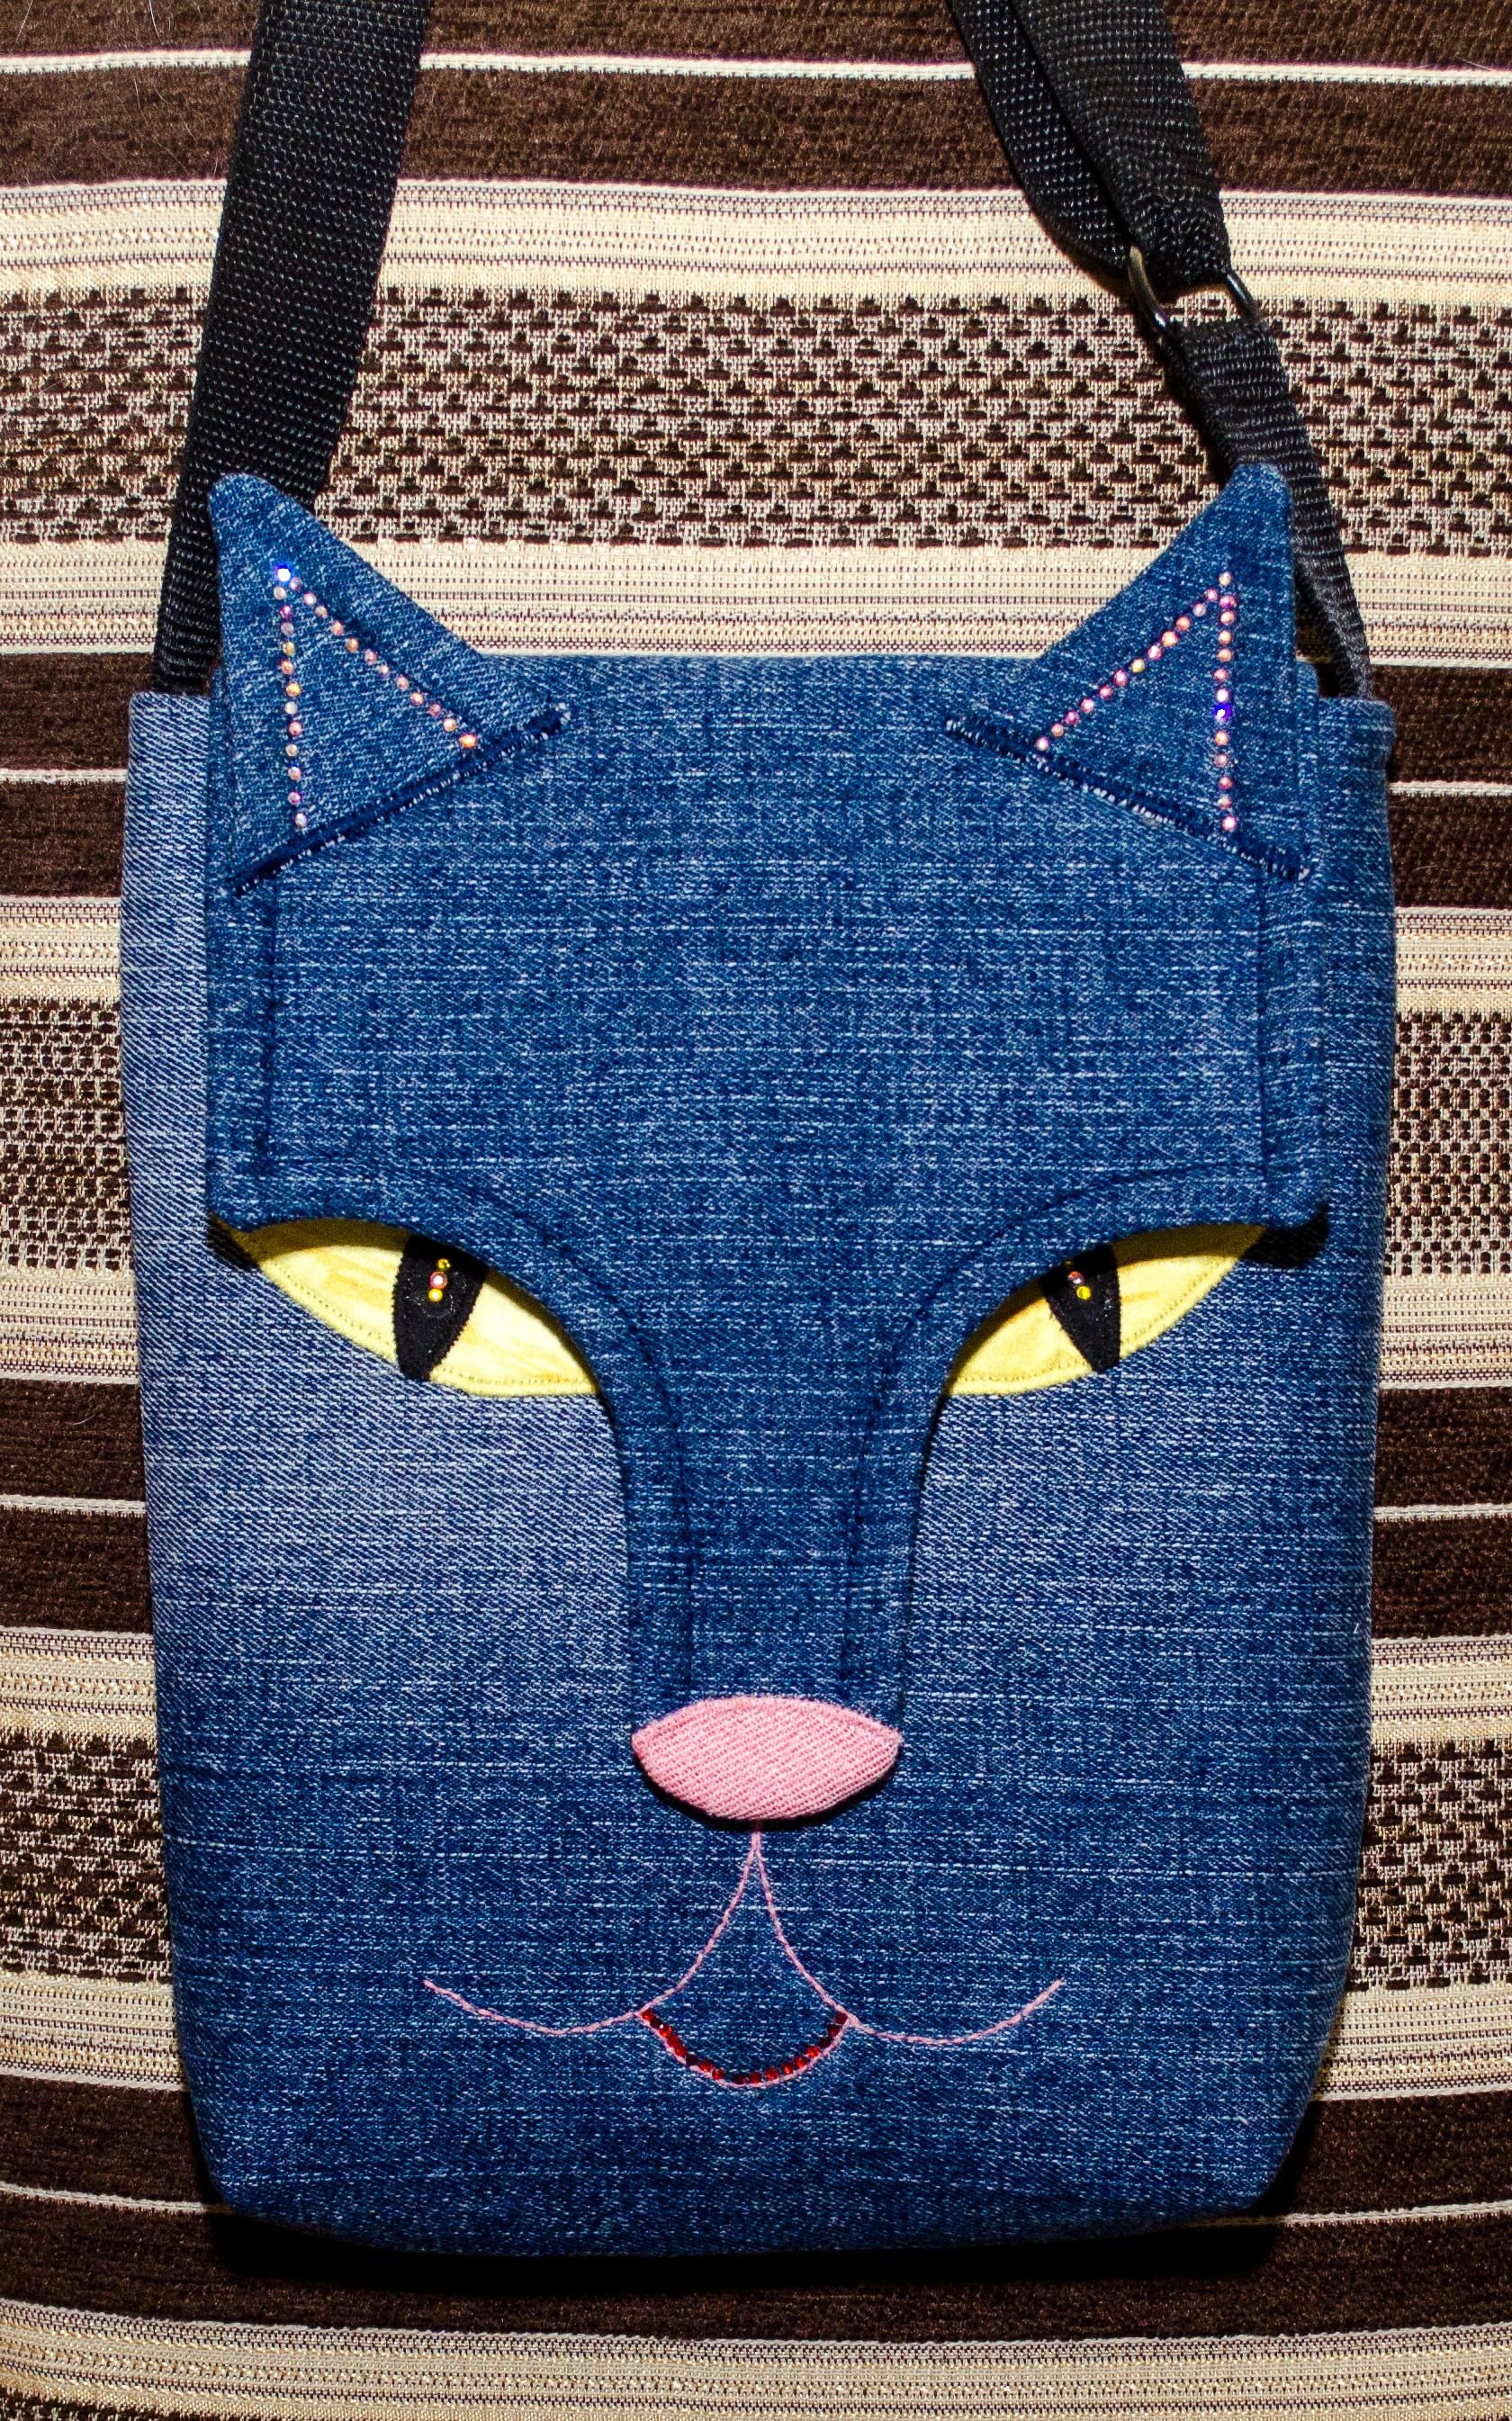 Flapon Cat Face Denim Purse Great Idea With Added Depth In Using The